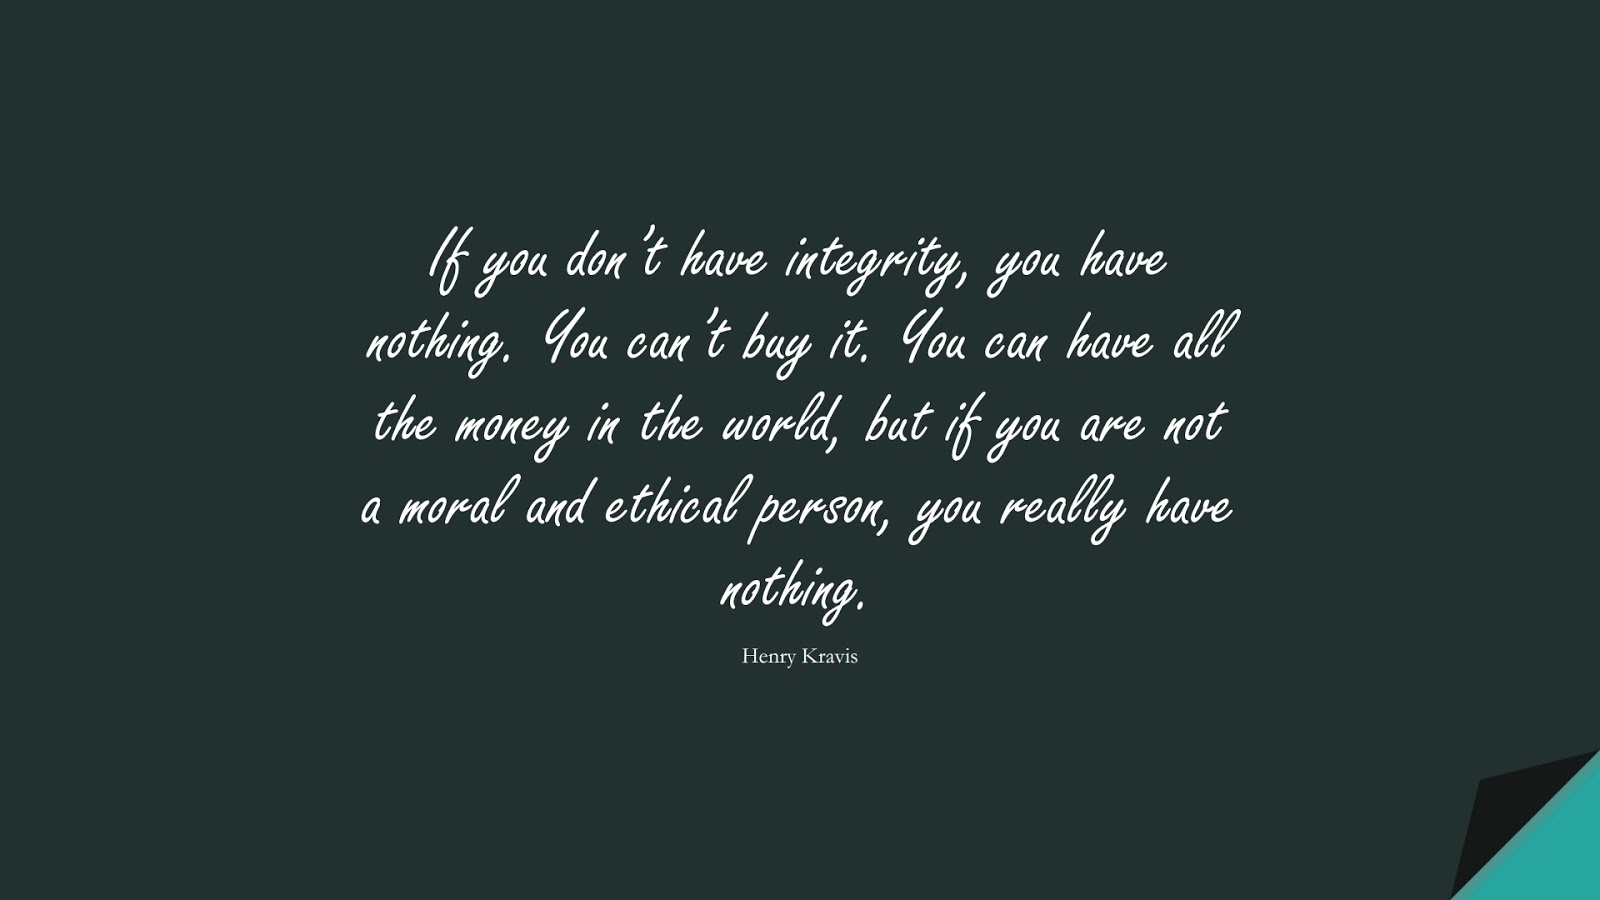 If you don't have integrity, you have nothing. You can't buy it. You can have all the money in the world, but if you are not a moral and ethical person, you really have nothing. (Henry Kravis);  #MoneyQuotes